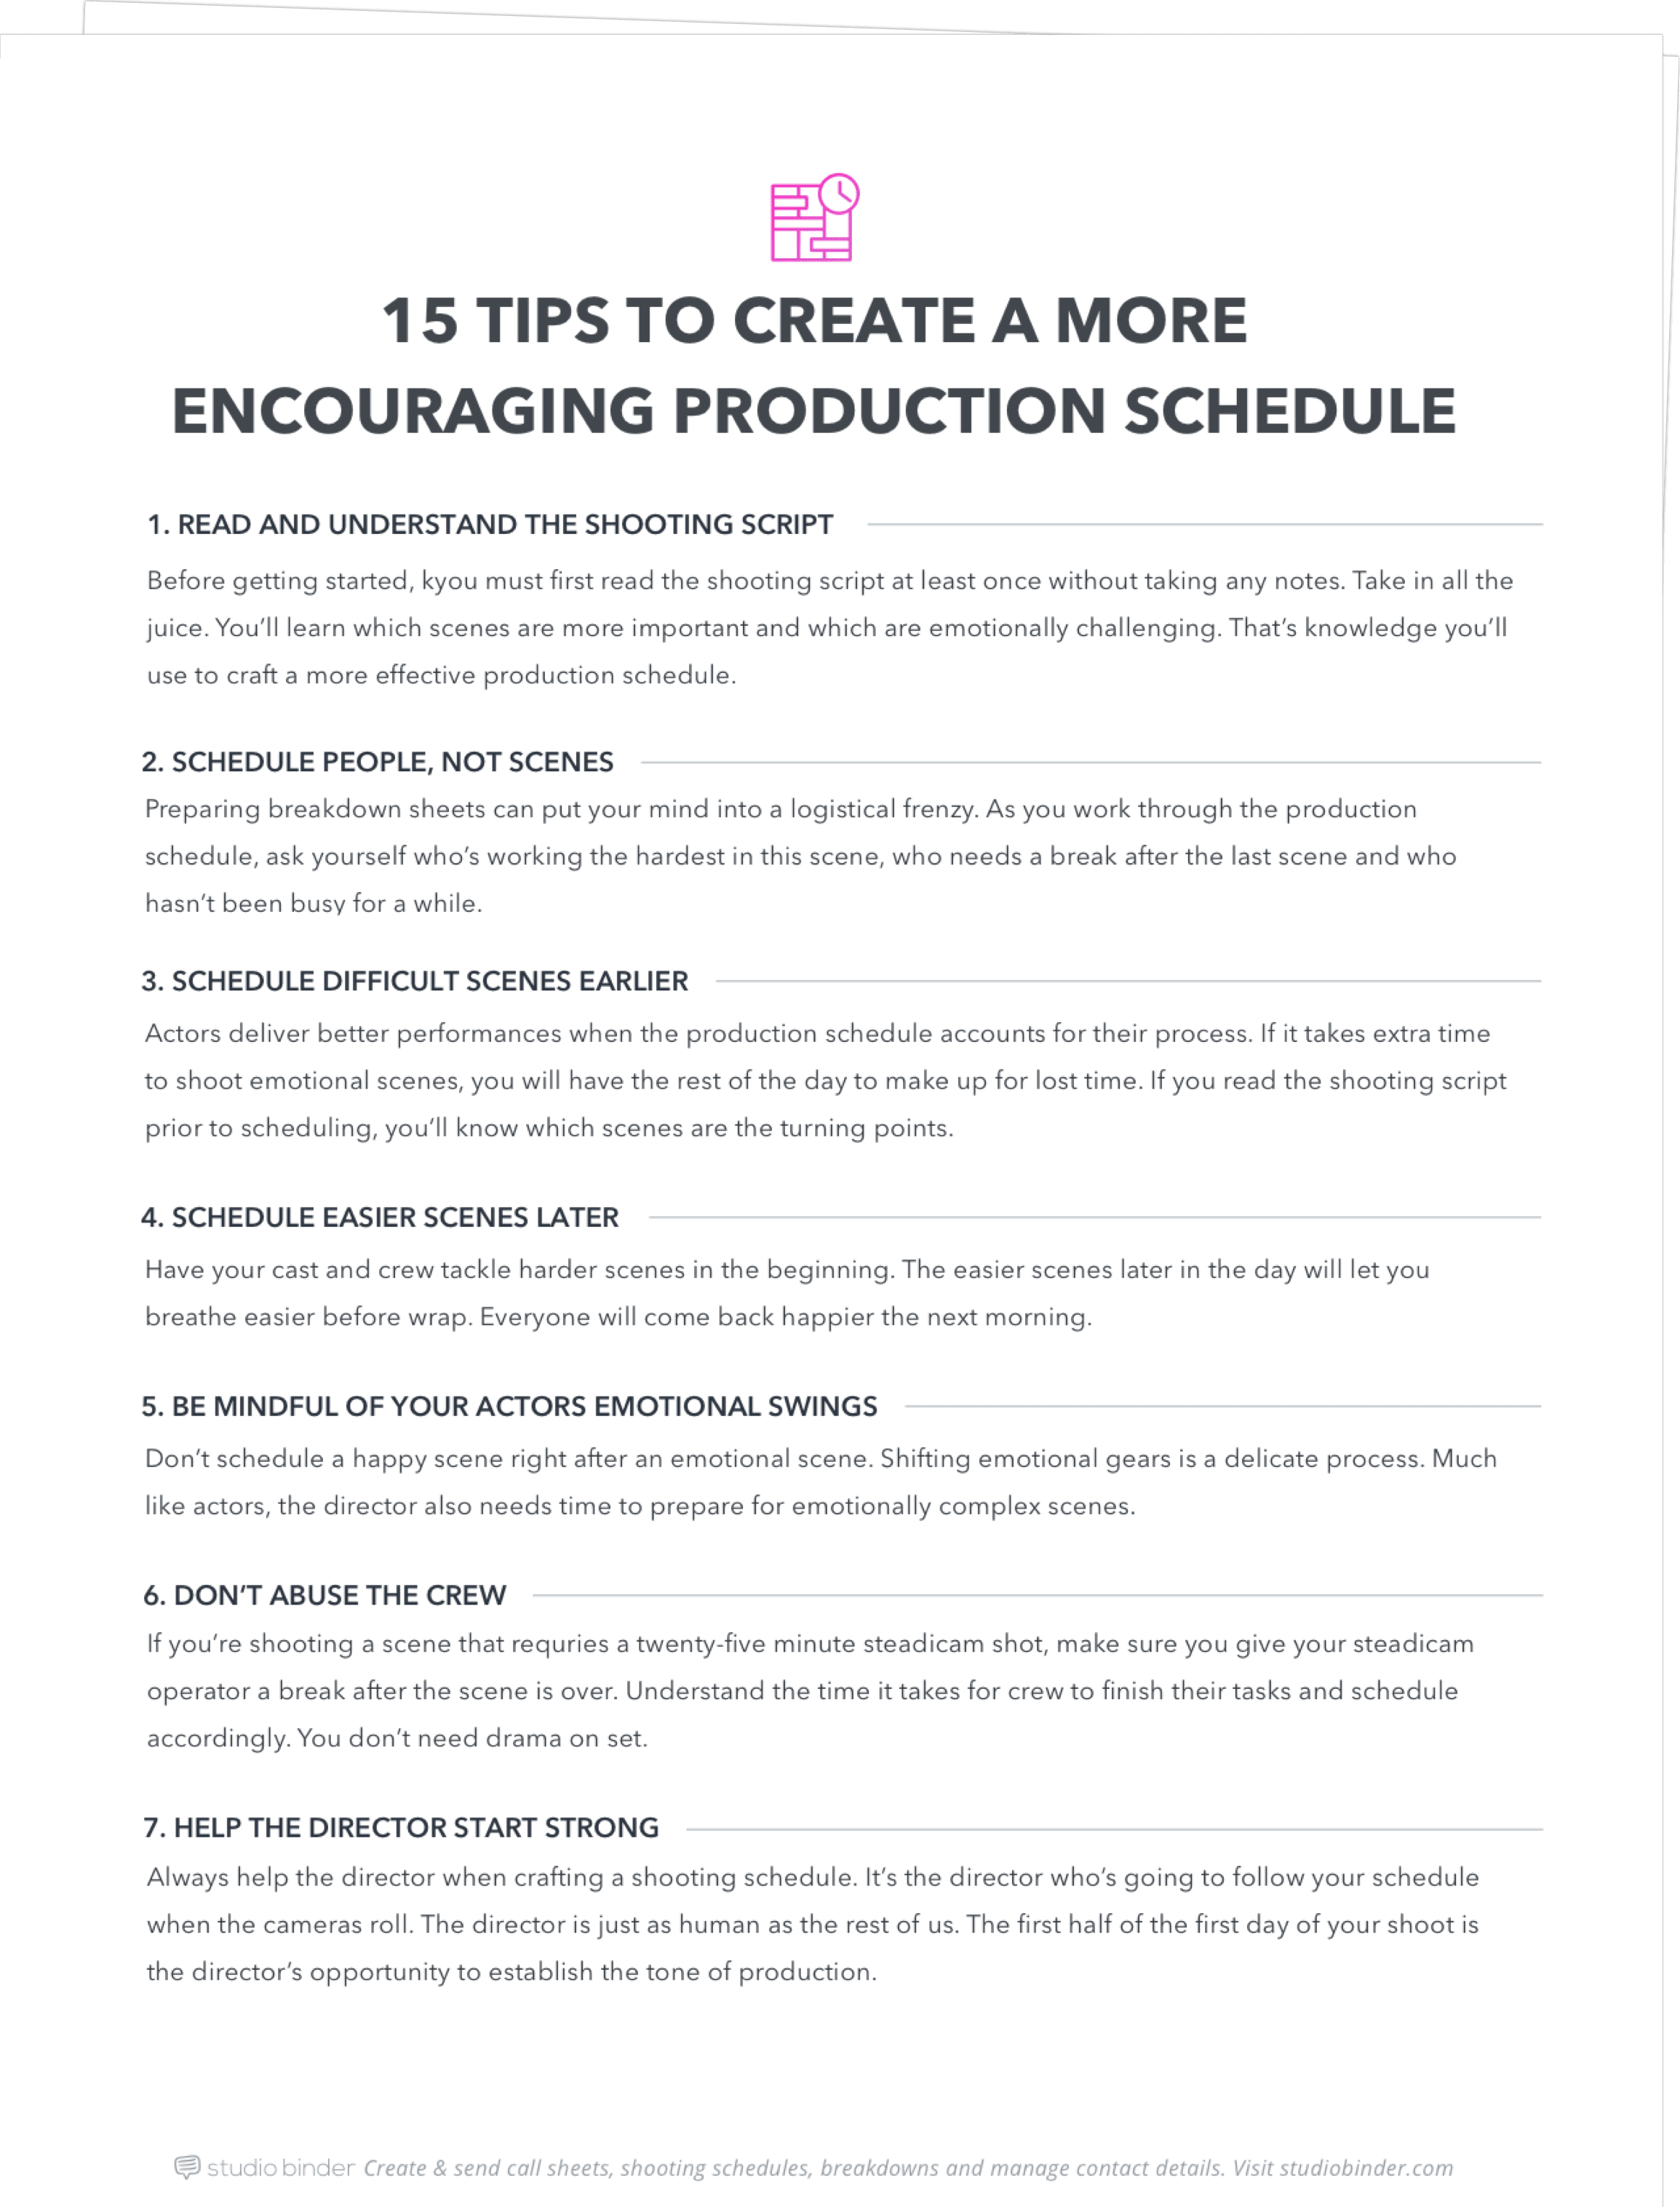 15 Tips To Create A More Encouraging Production Schedule - Exit Intent - Full Page - StudioBinder